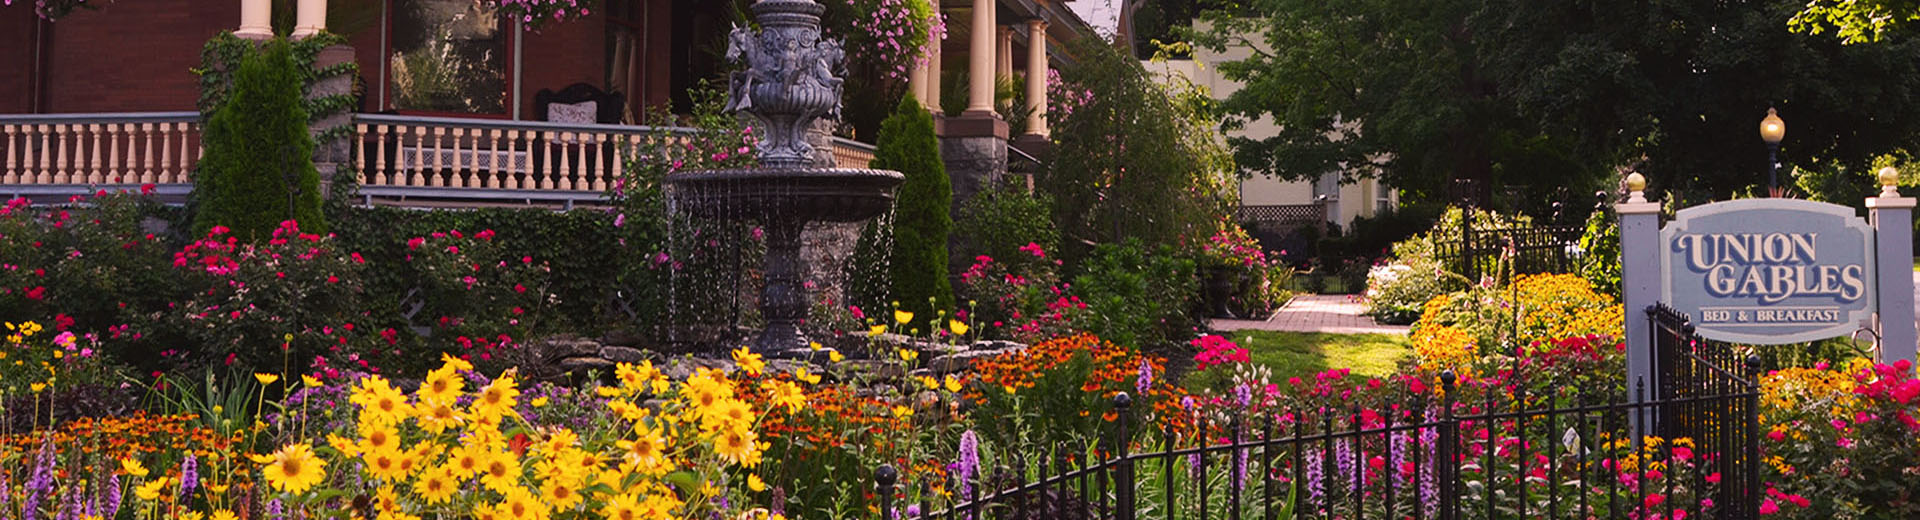 Union Gables Mansion Inn, located in the heart of Saratoga Springs ...